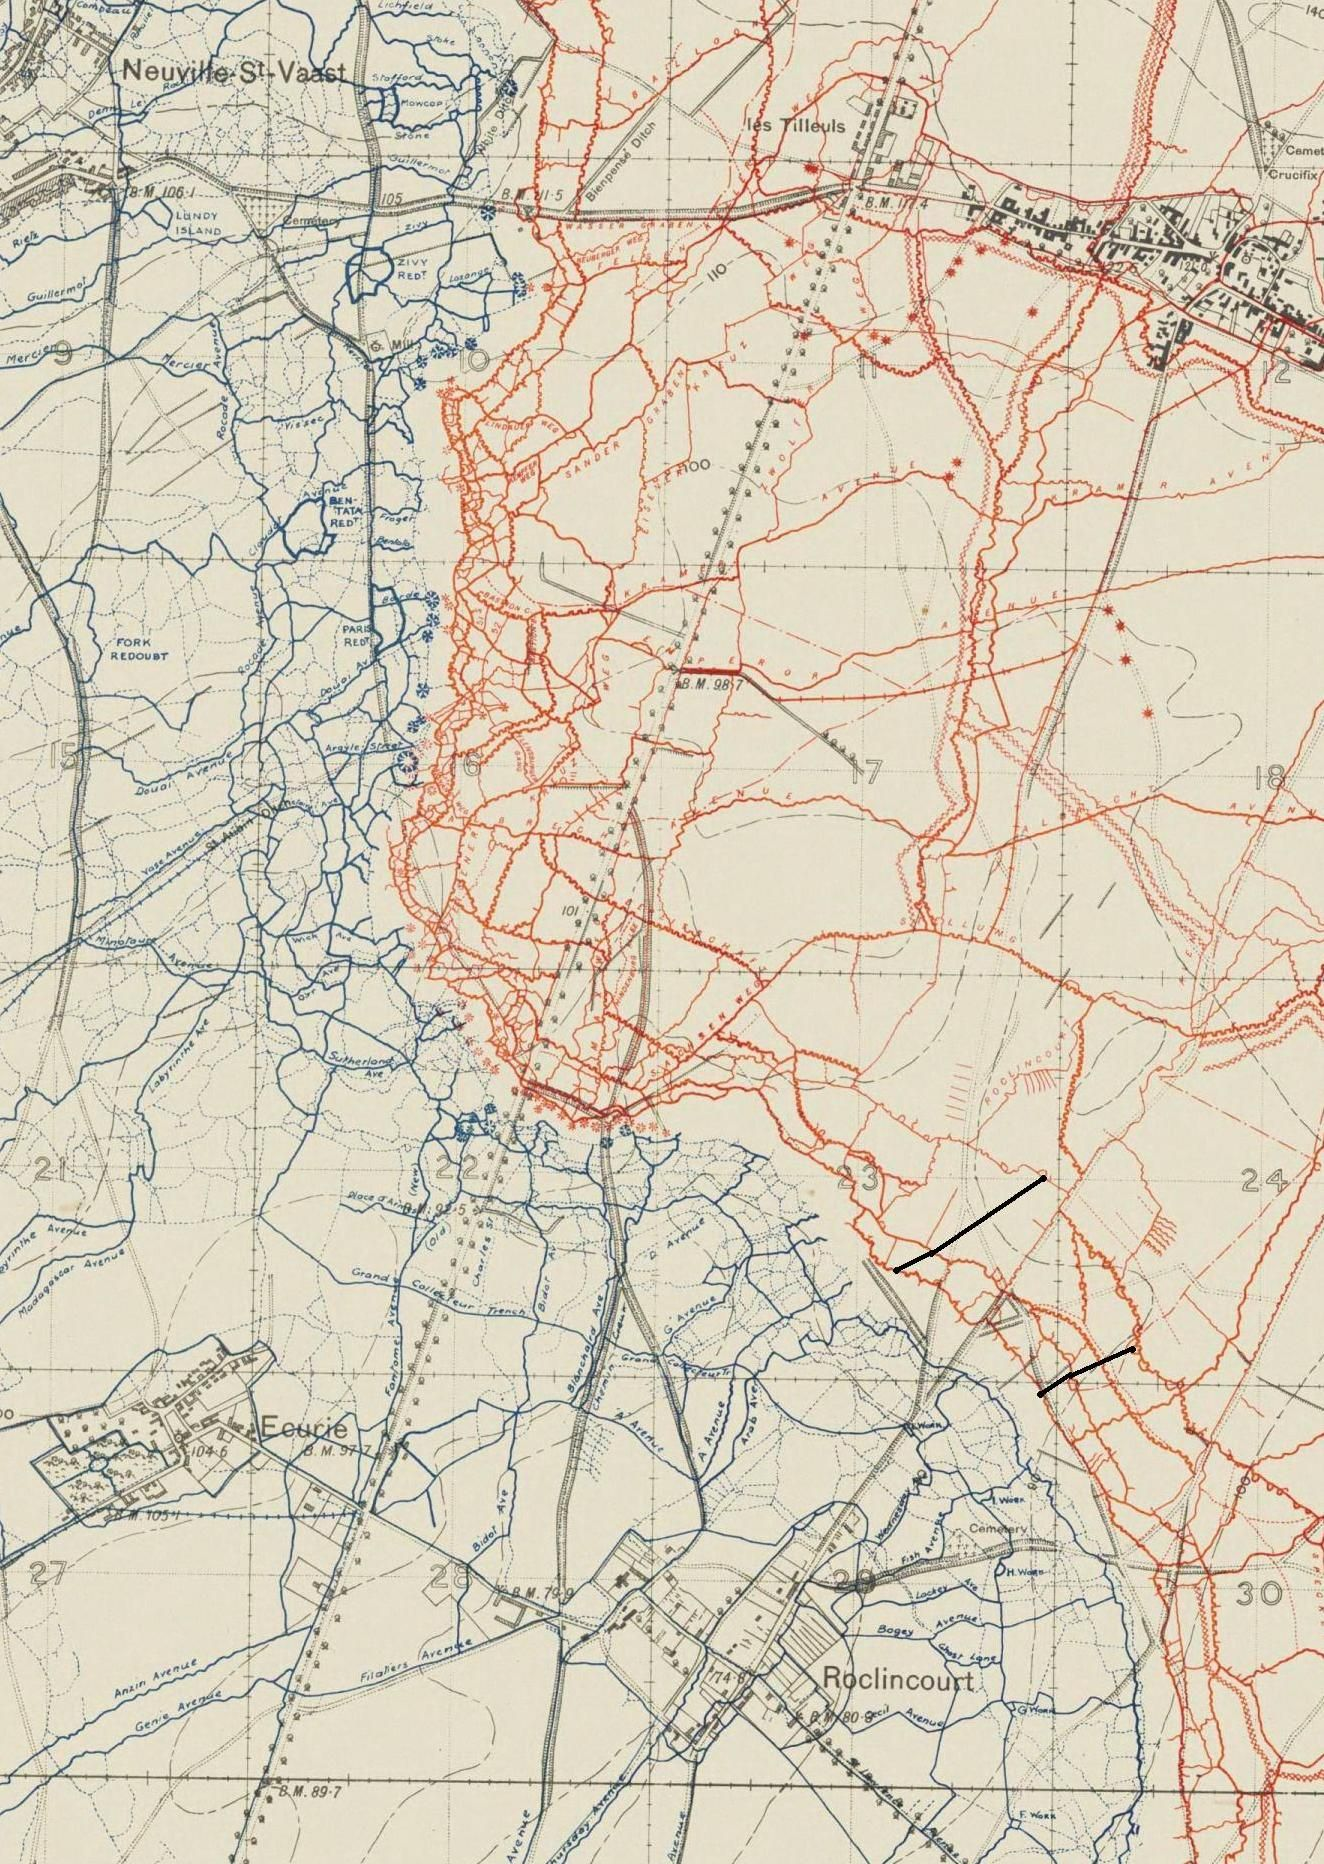 Trench Map : trench, Trench, Roclincourt-Neuville-Thelus, Sectors., Black, Lines, Boundaries, Seaforths, Attack, April, 191…, Kaarten,, Wereldoorlog,, Militair